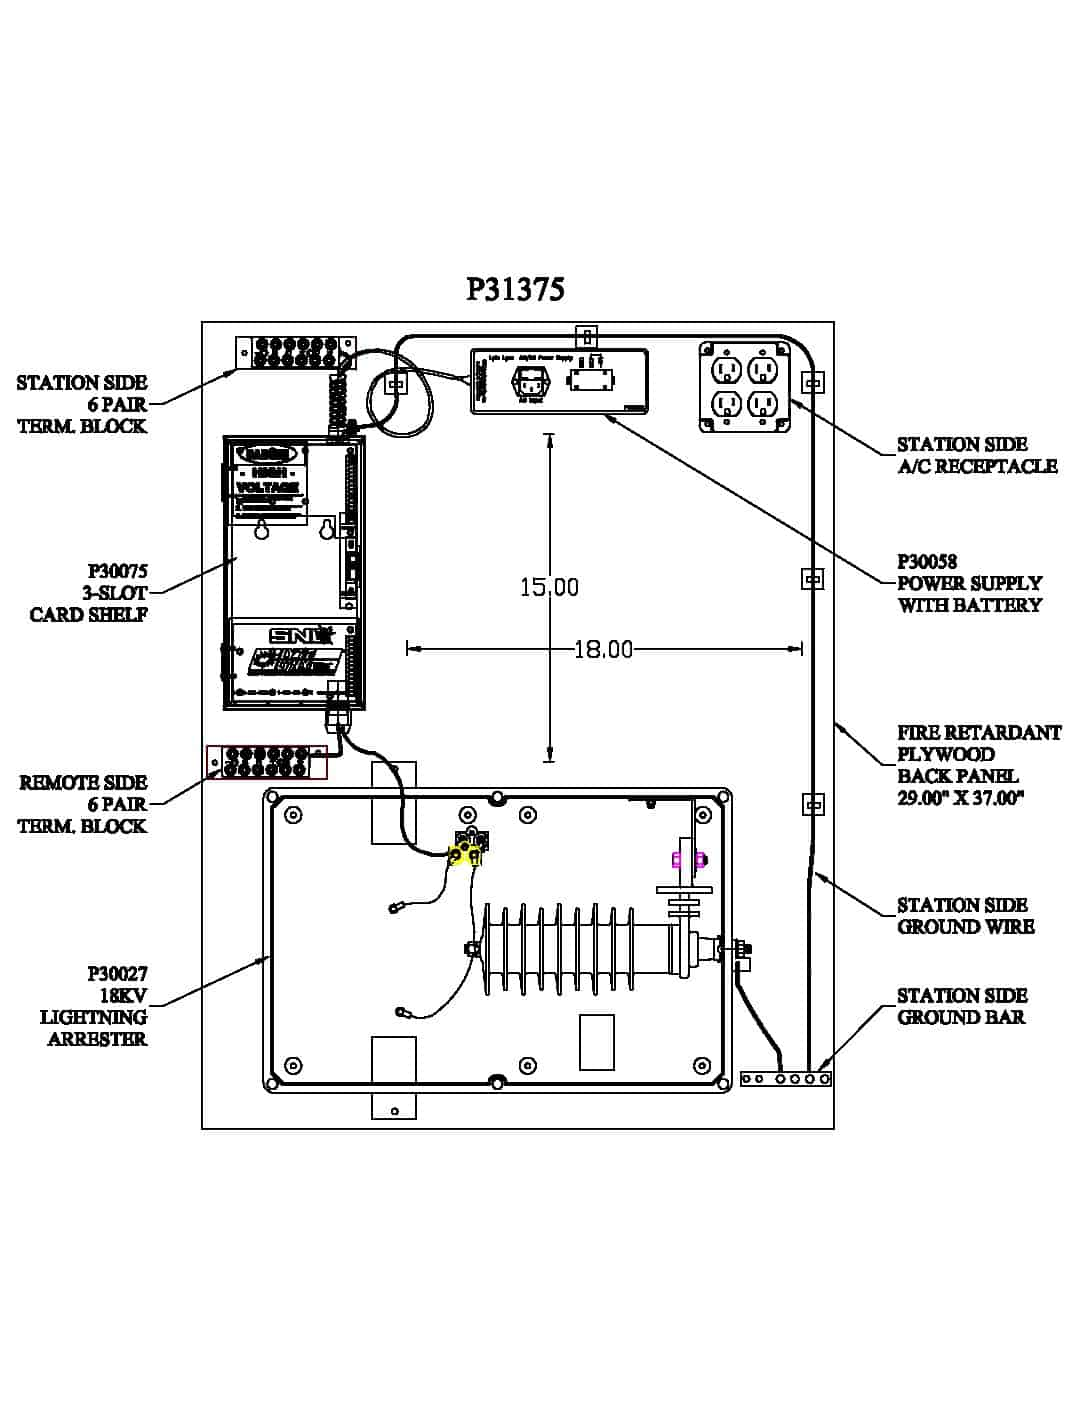 P31375 Turnkey Protection Packages - 3 slot PDF thumbnail